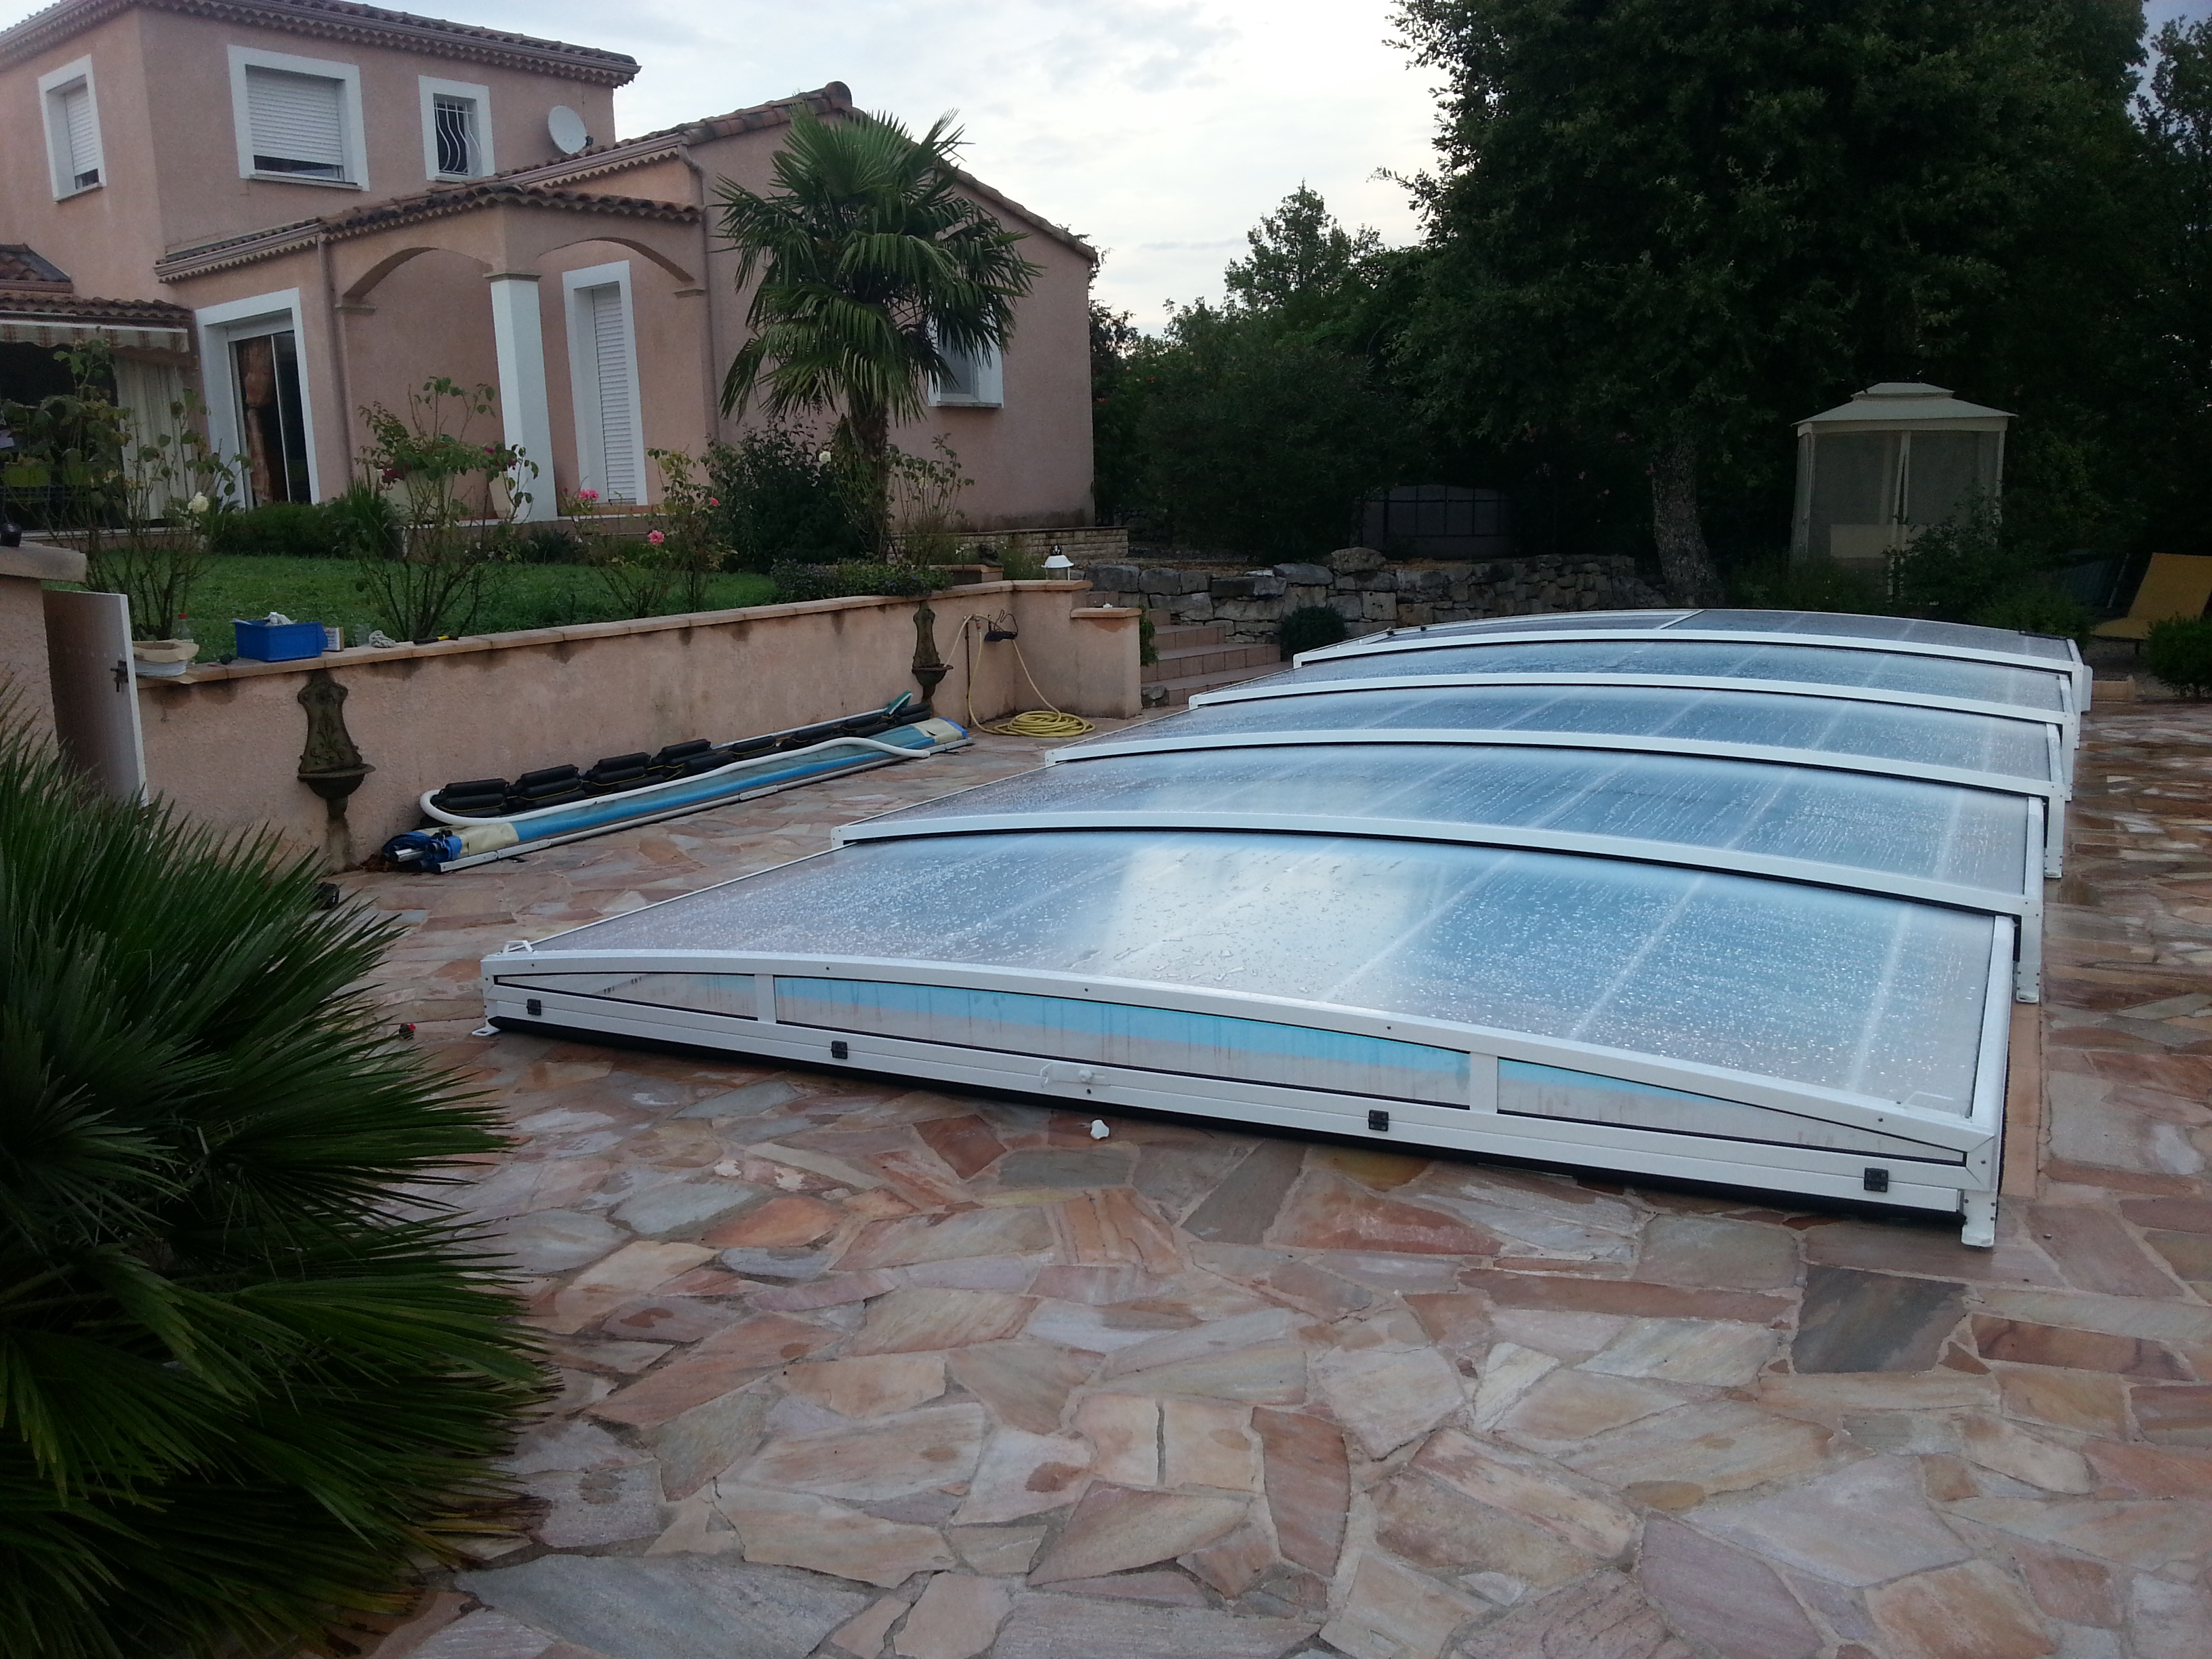 Abri de piscine en kit abris piscine en kit c c mon abri for Abri piscine plat